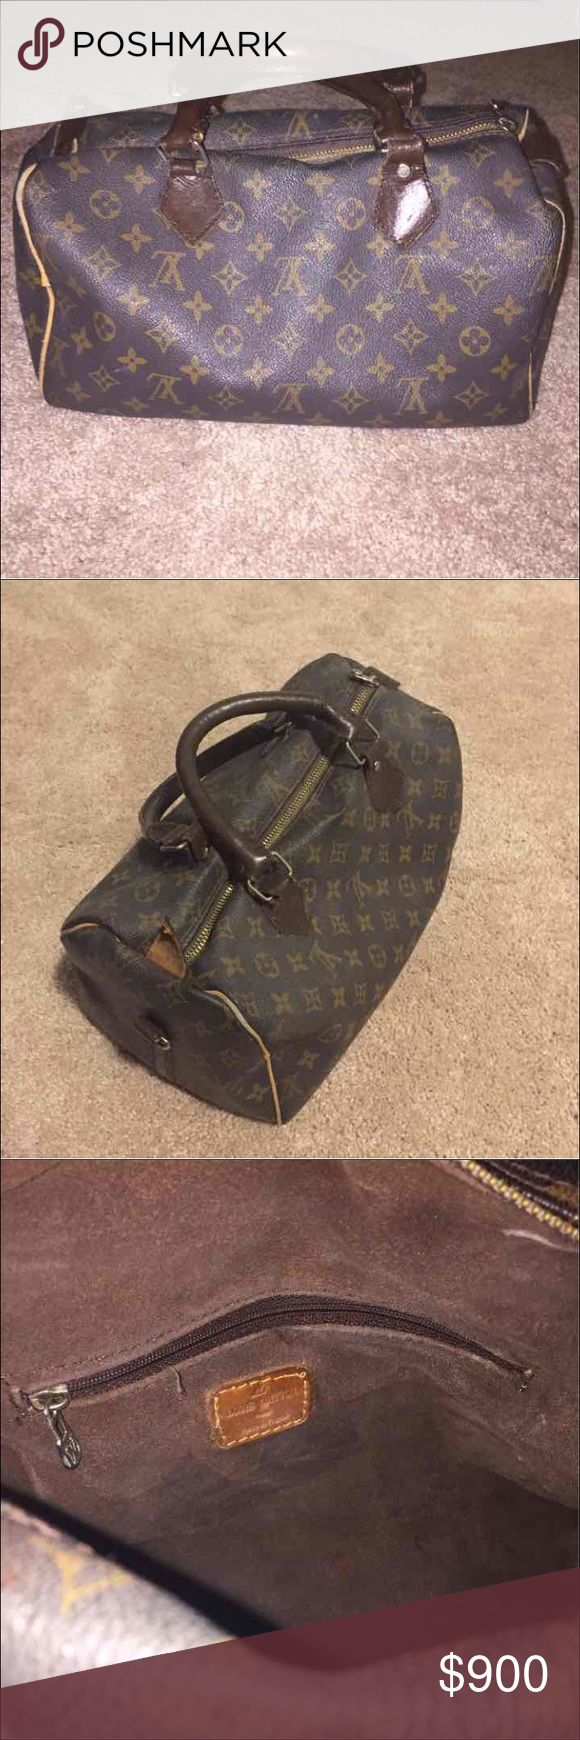 Vintage Louis Vuitton Handbag Vintage LV small handbag. Measures about 11.5 inches across and about 7 inches height. Has one zipper on the inside. It is a beautiful antique perfect for collectors. Willing to go down on price if purchased through PayPal. Louis Vuitton Bags Totes